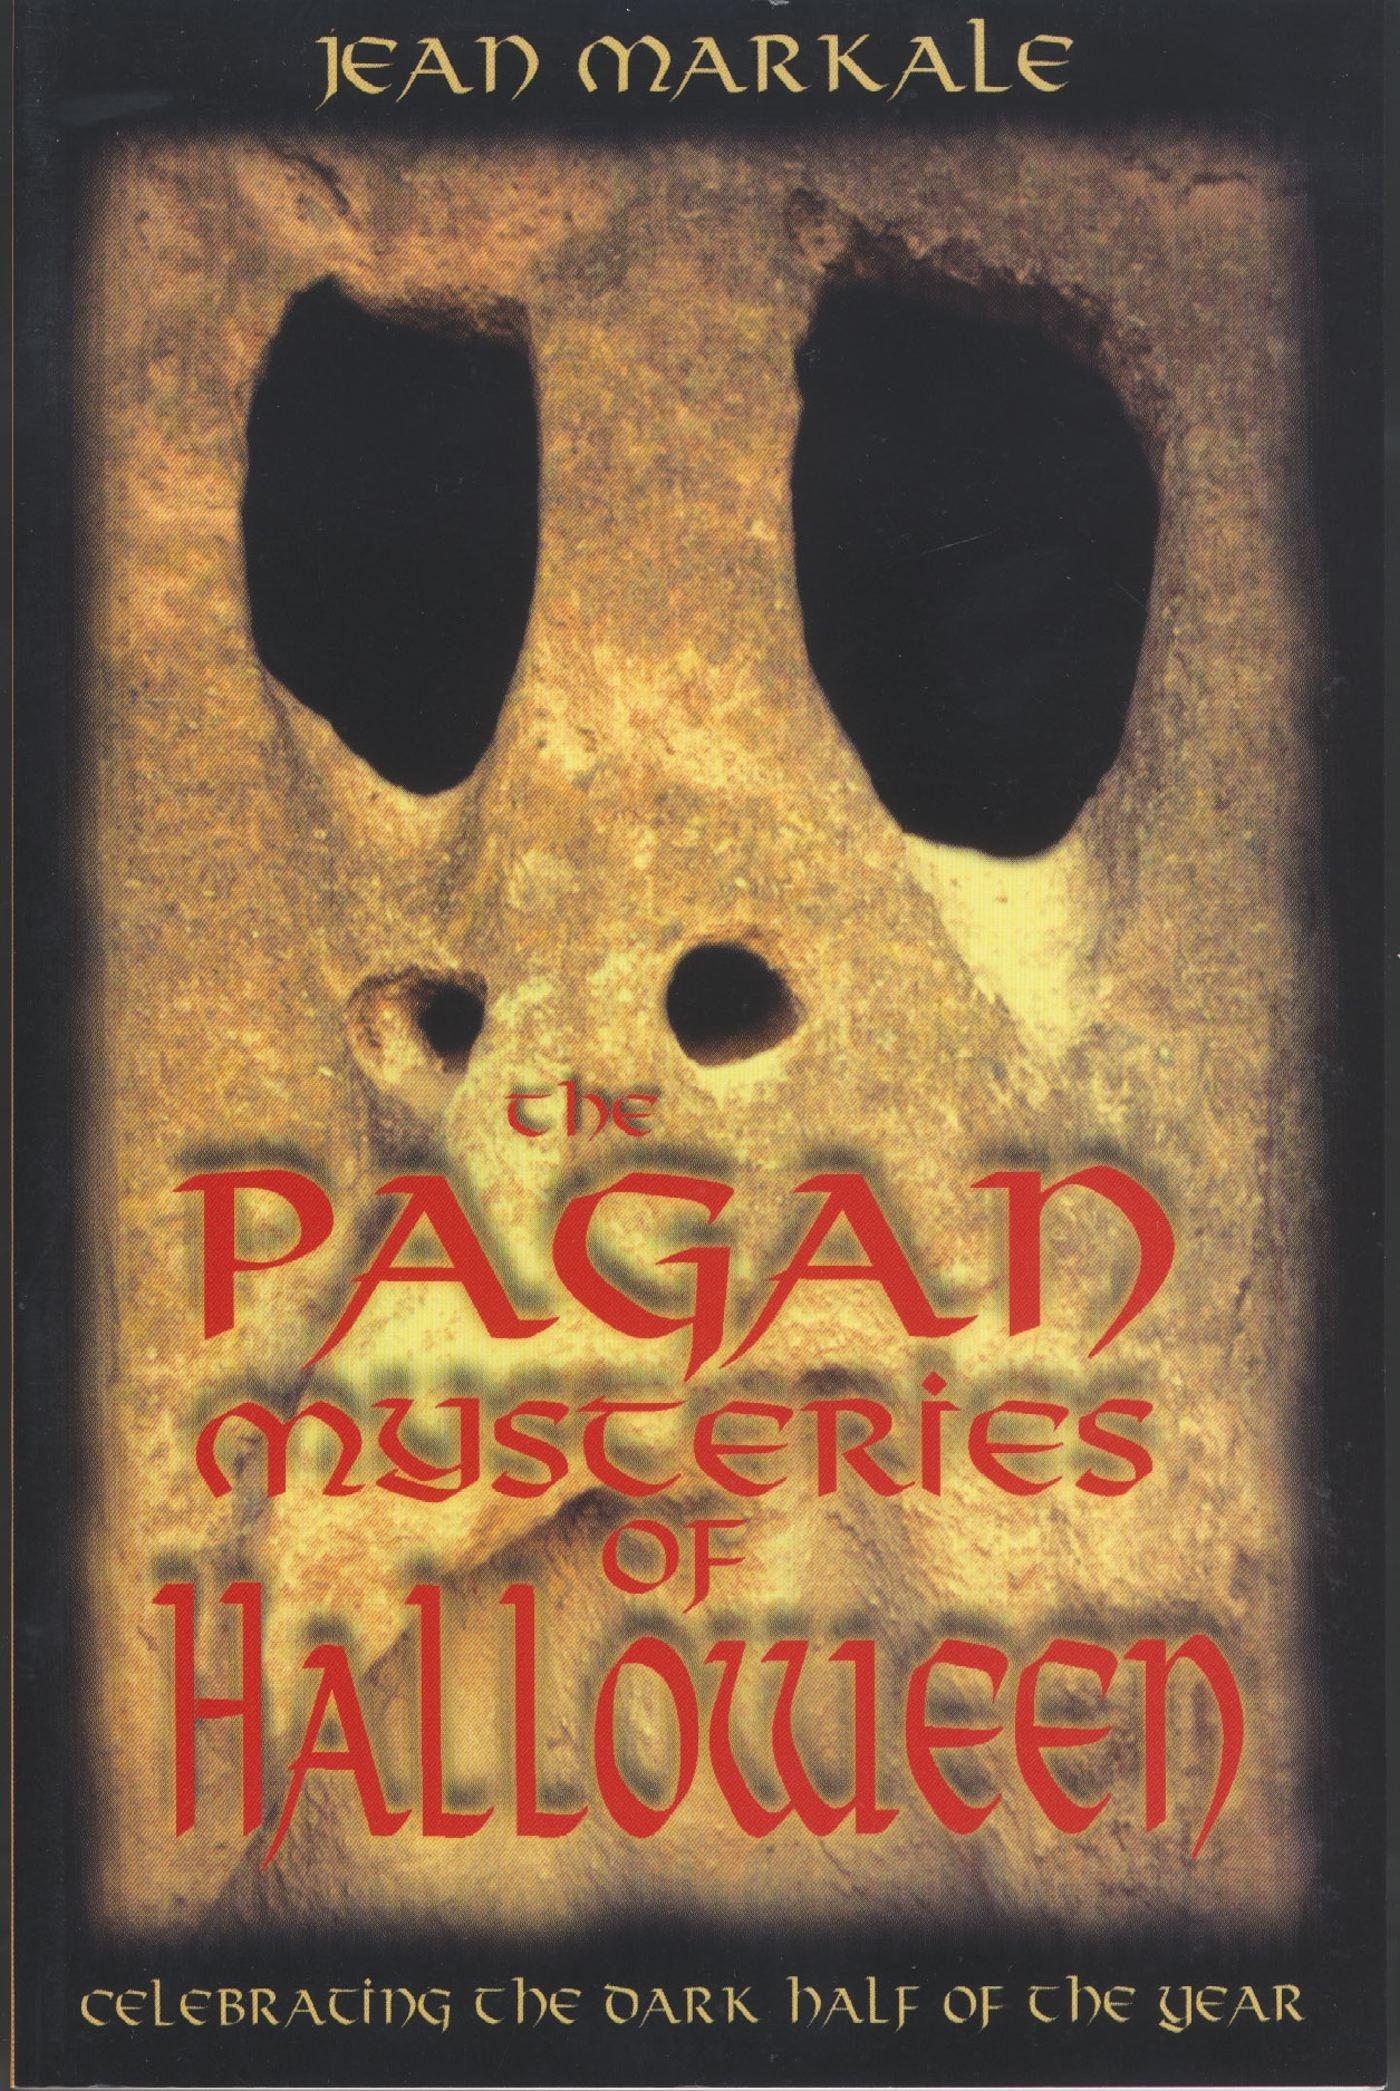 The Pagan Mysteries of Halloween: Celebrating the Dark Half